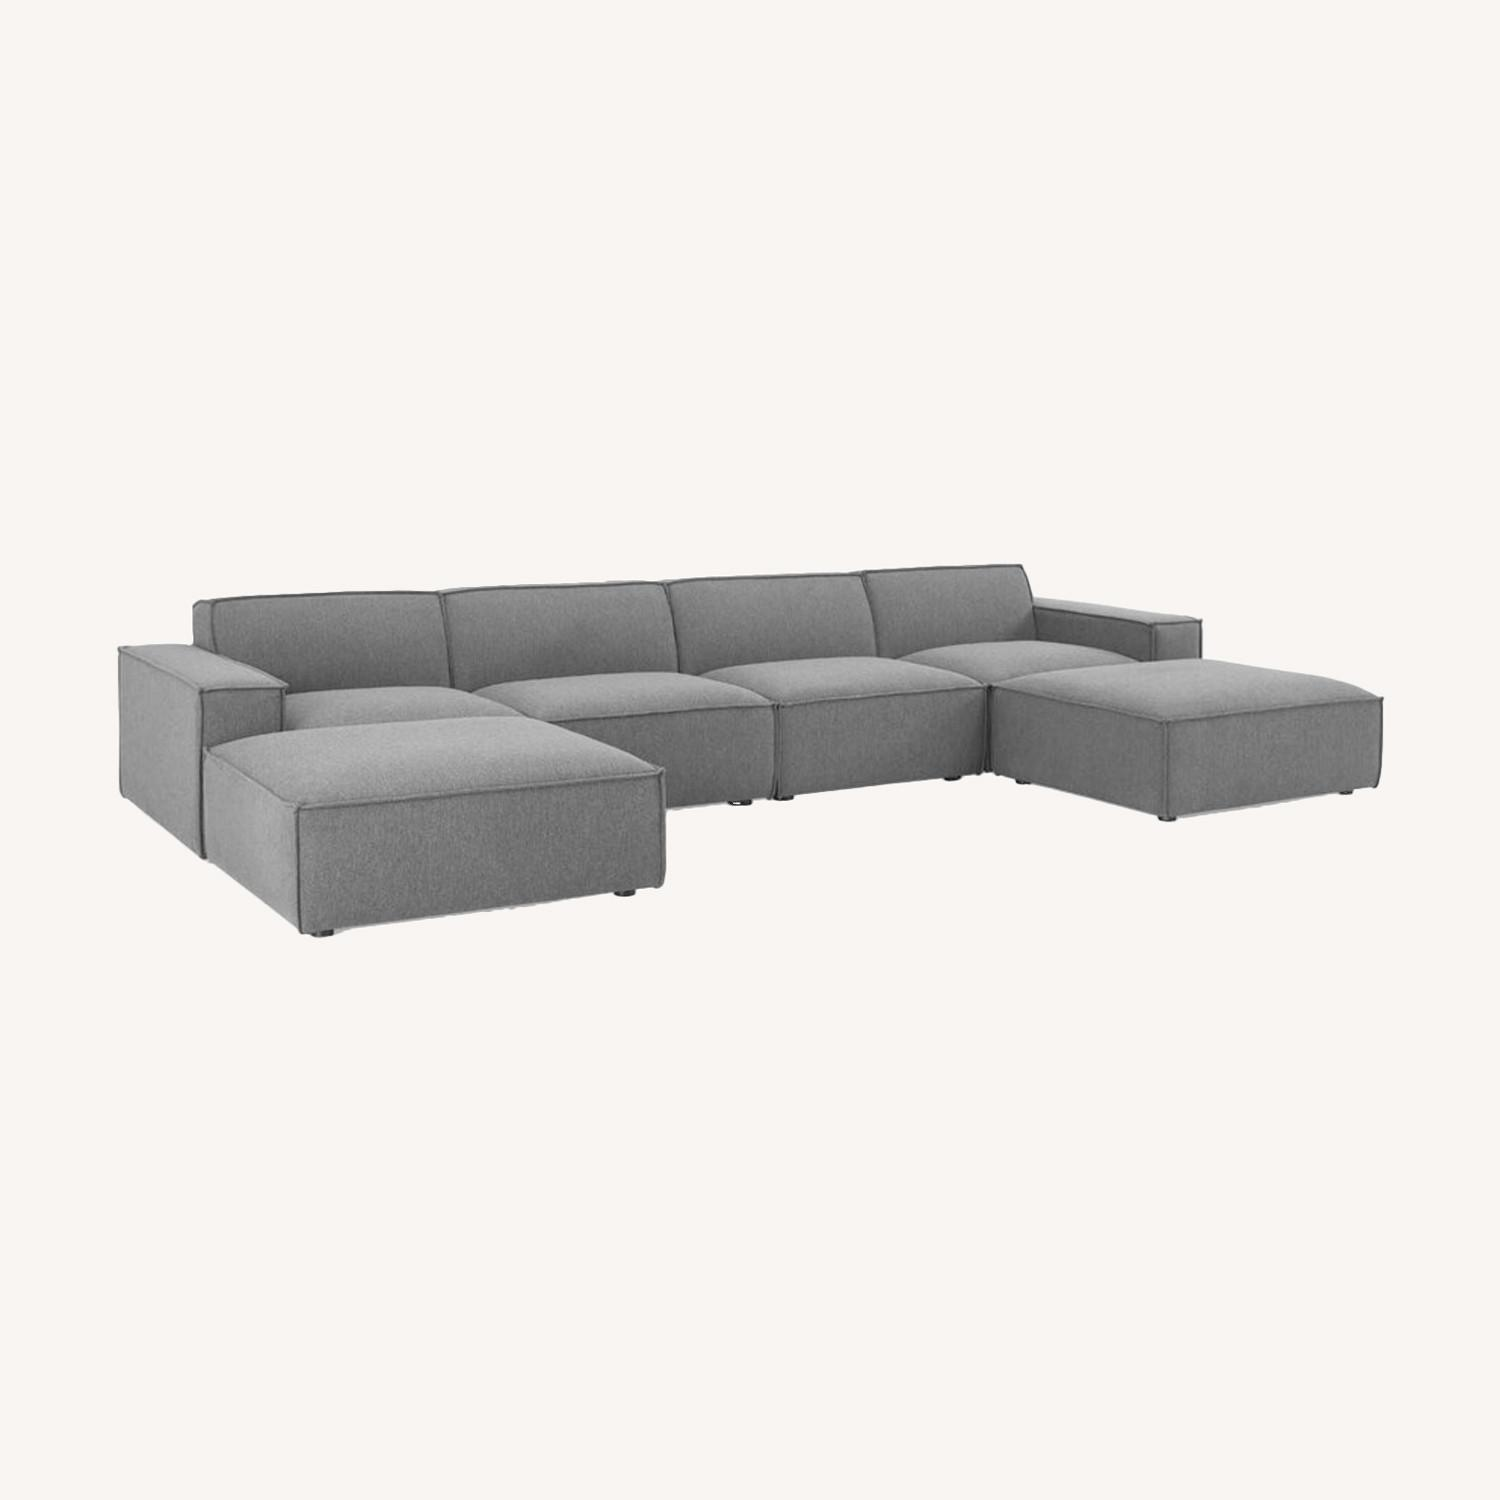 6-Piece Sectional Sofa In Charcoal Upholstery - image-11